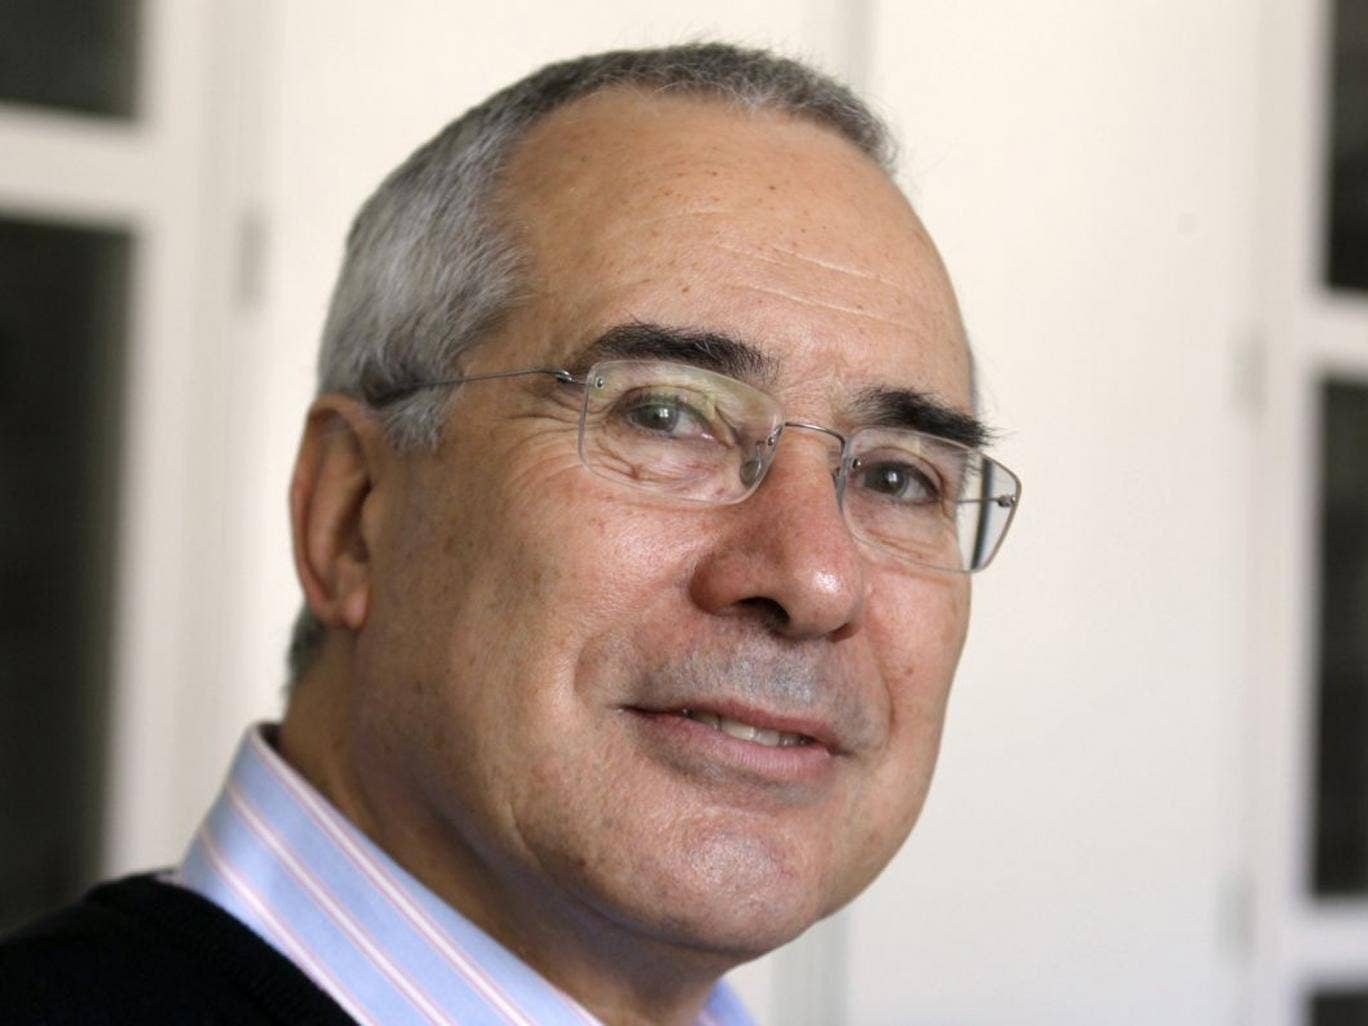 Respected economist Lord Stern has criticised the Government for encouraging rush into fracking without a thorough analysis of all its potential ramifications